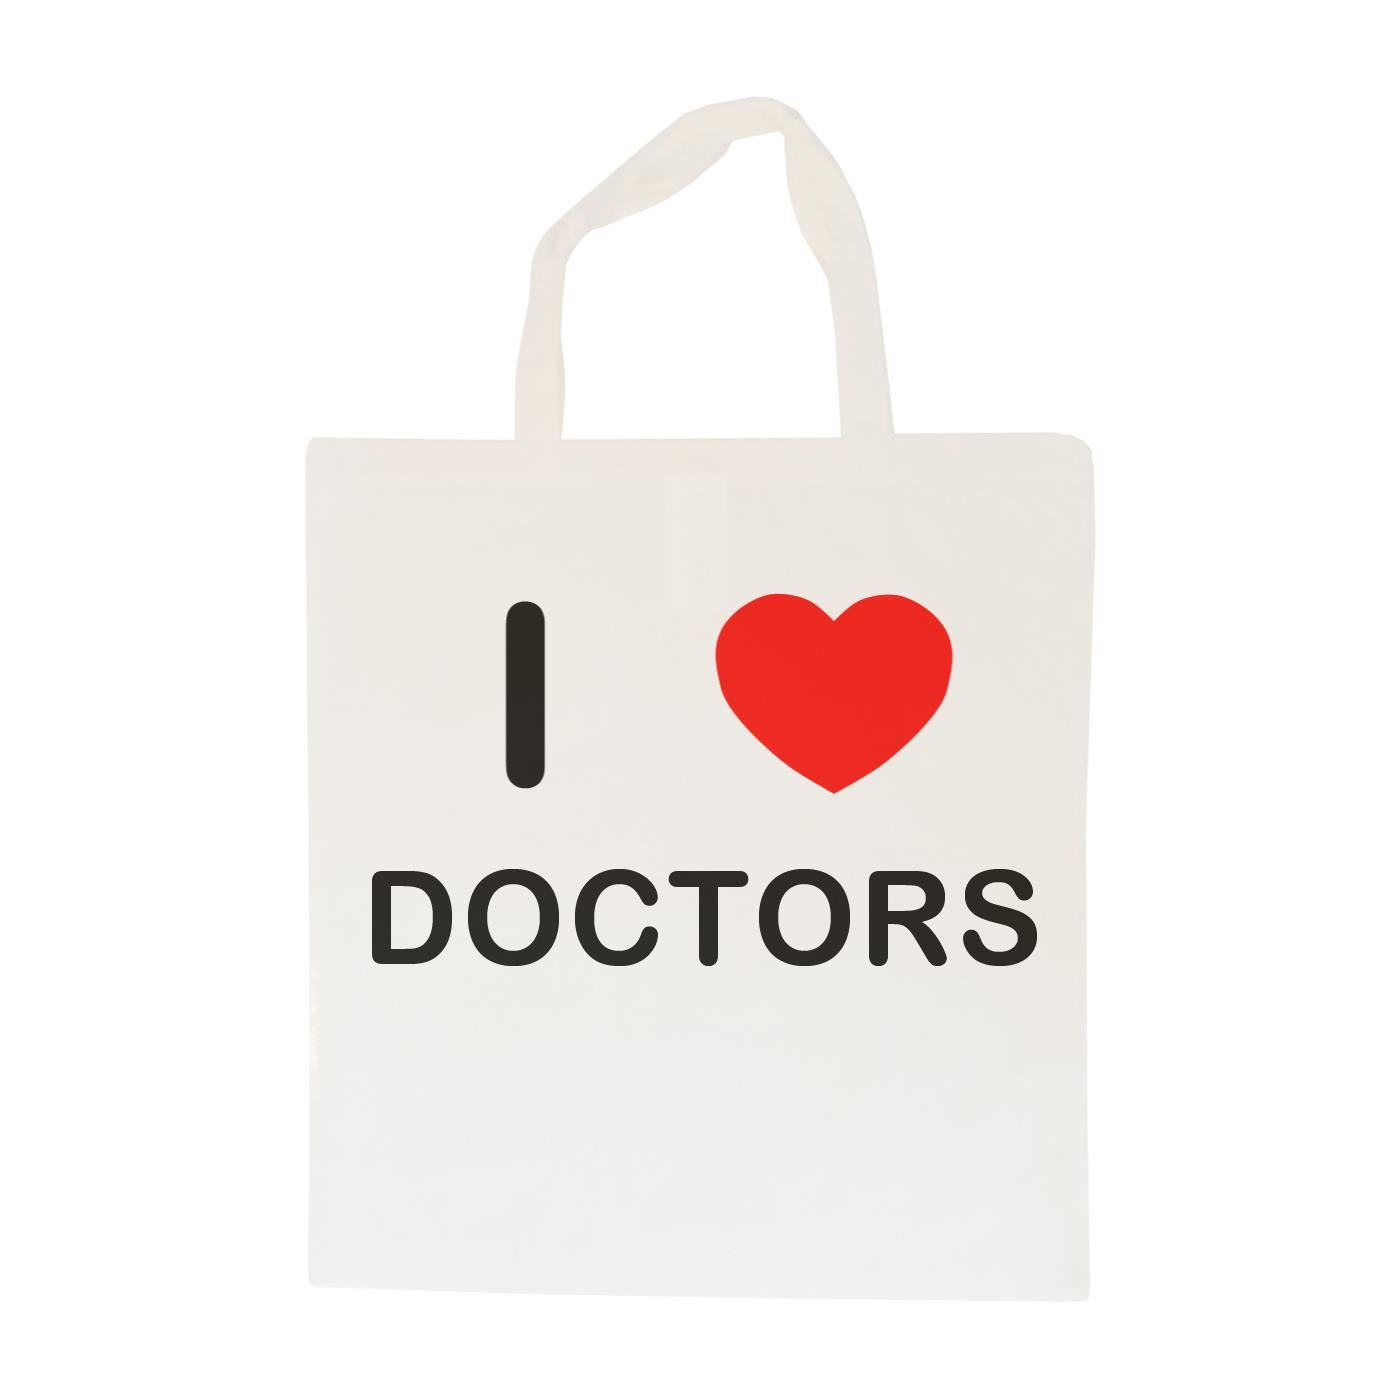 I Love Doctors - Cotton Bag | Size choice Tote, Shopper or Sling